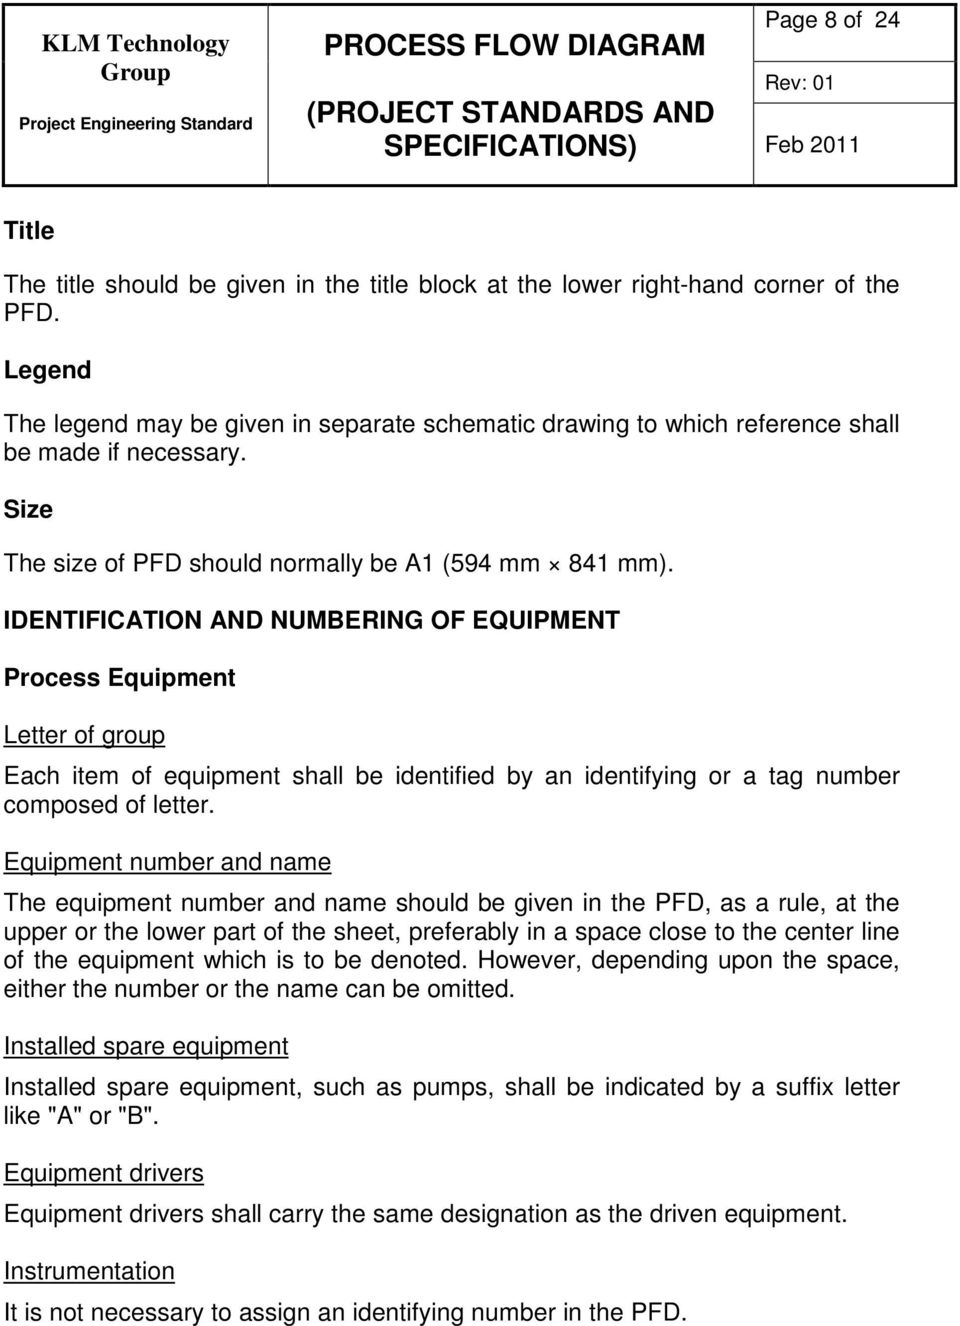 IDENTIFICATION AND NUMBERING OF EQUIPMENT Process Equipment Letter of group Each item of equipment shall be identified by an identifying or a tag number composed of letter.